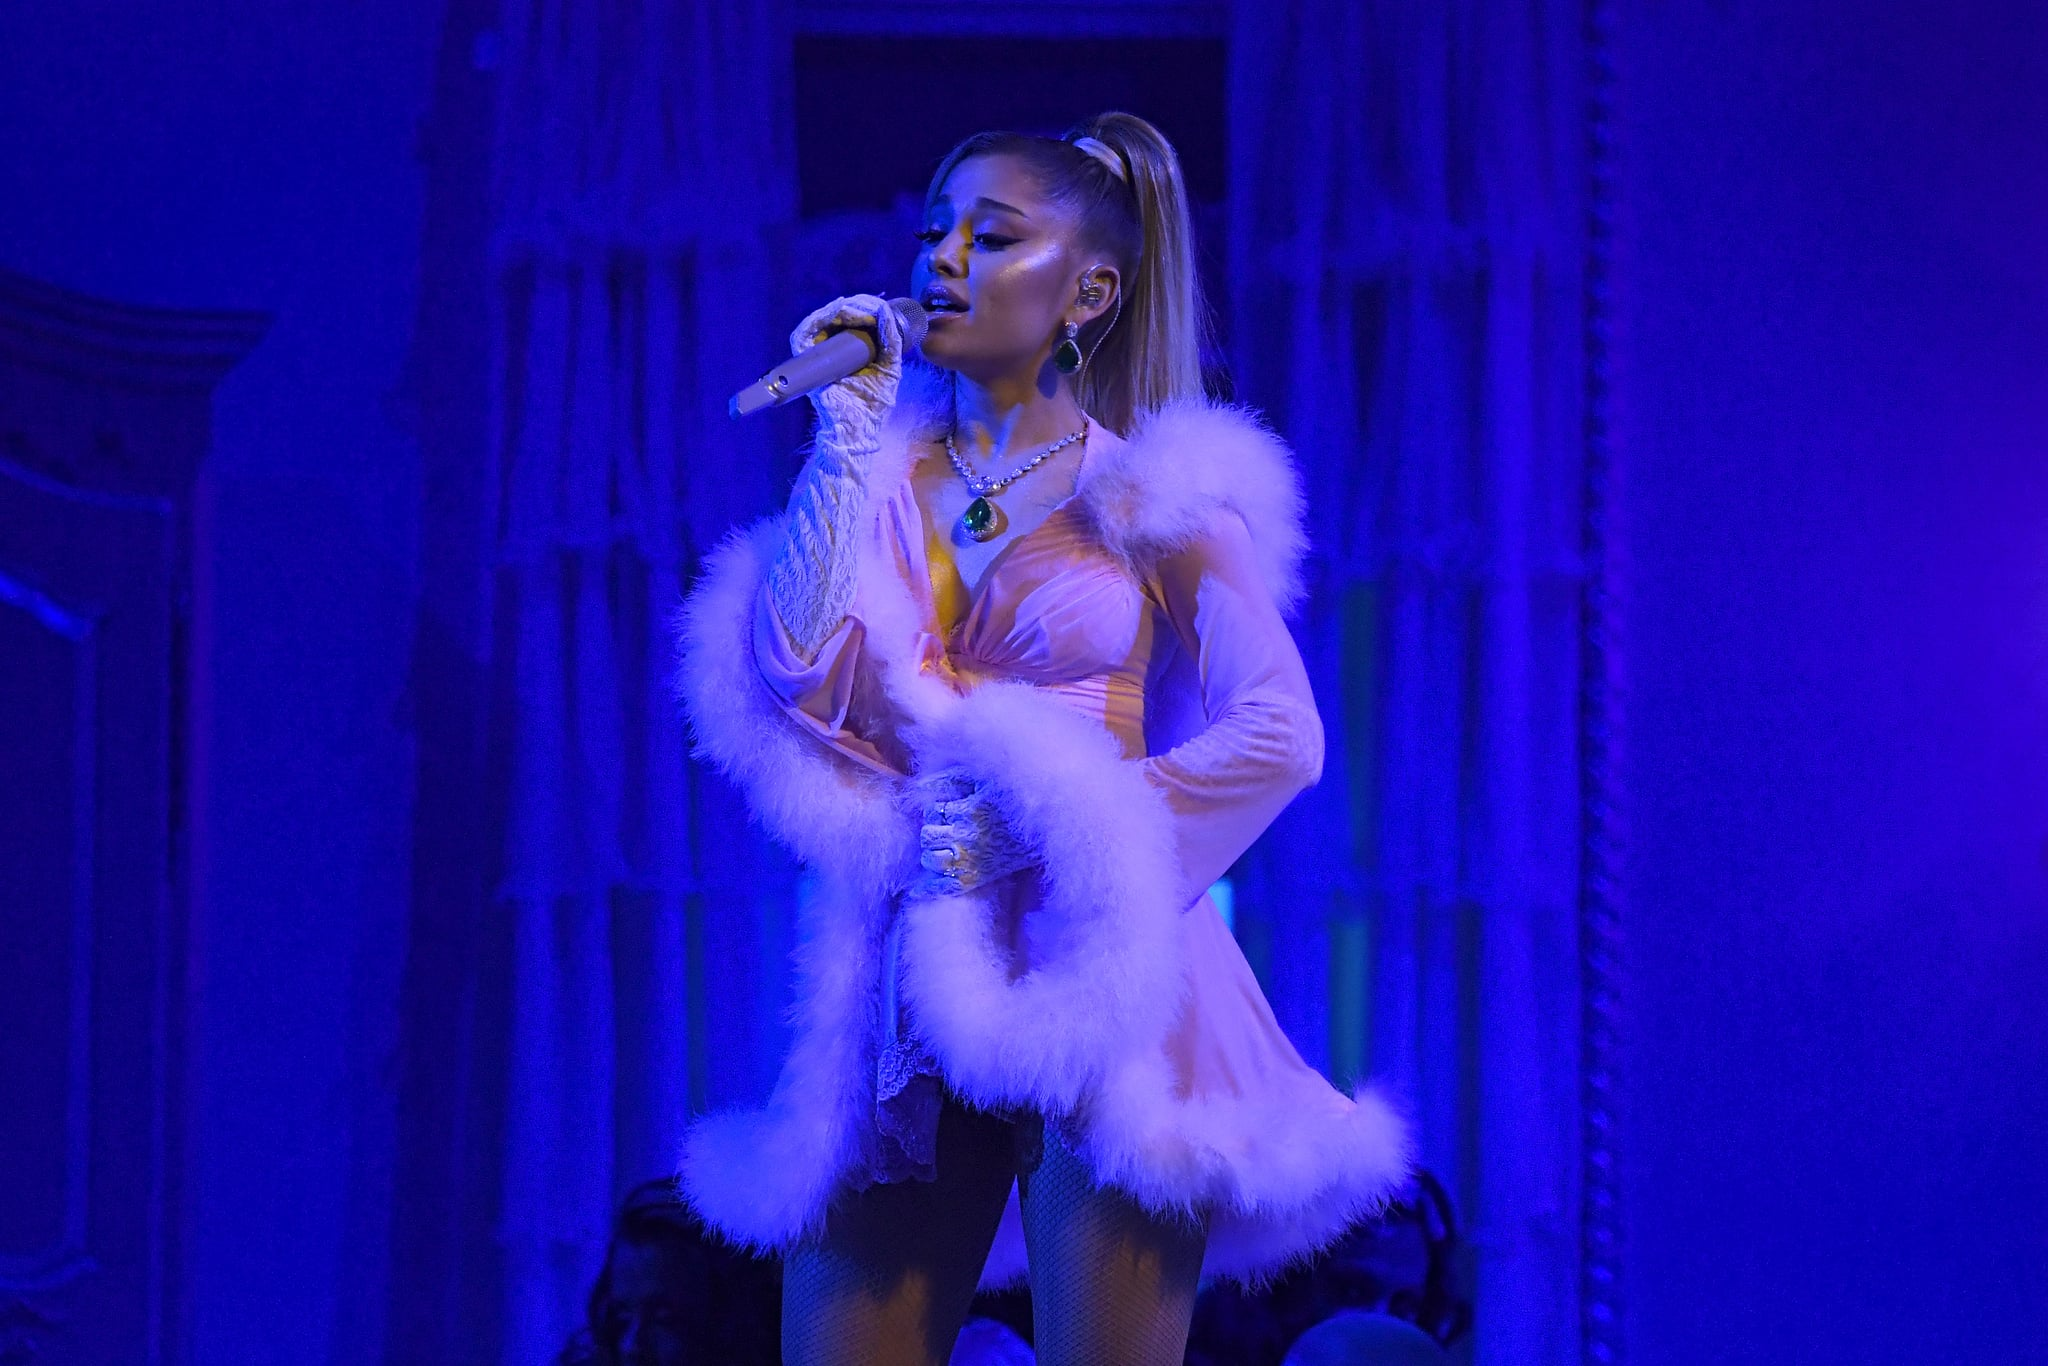 LOS ANGELES, CALIFORNIA - JANUARY 26: Ariana Grande performs onstage during the 62nd Annual GRAMMY Awards at Staples Centre on January 26, 2020 in Los Angeles, California. (Photo by Kevork Djansezian/Getty Images)